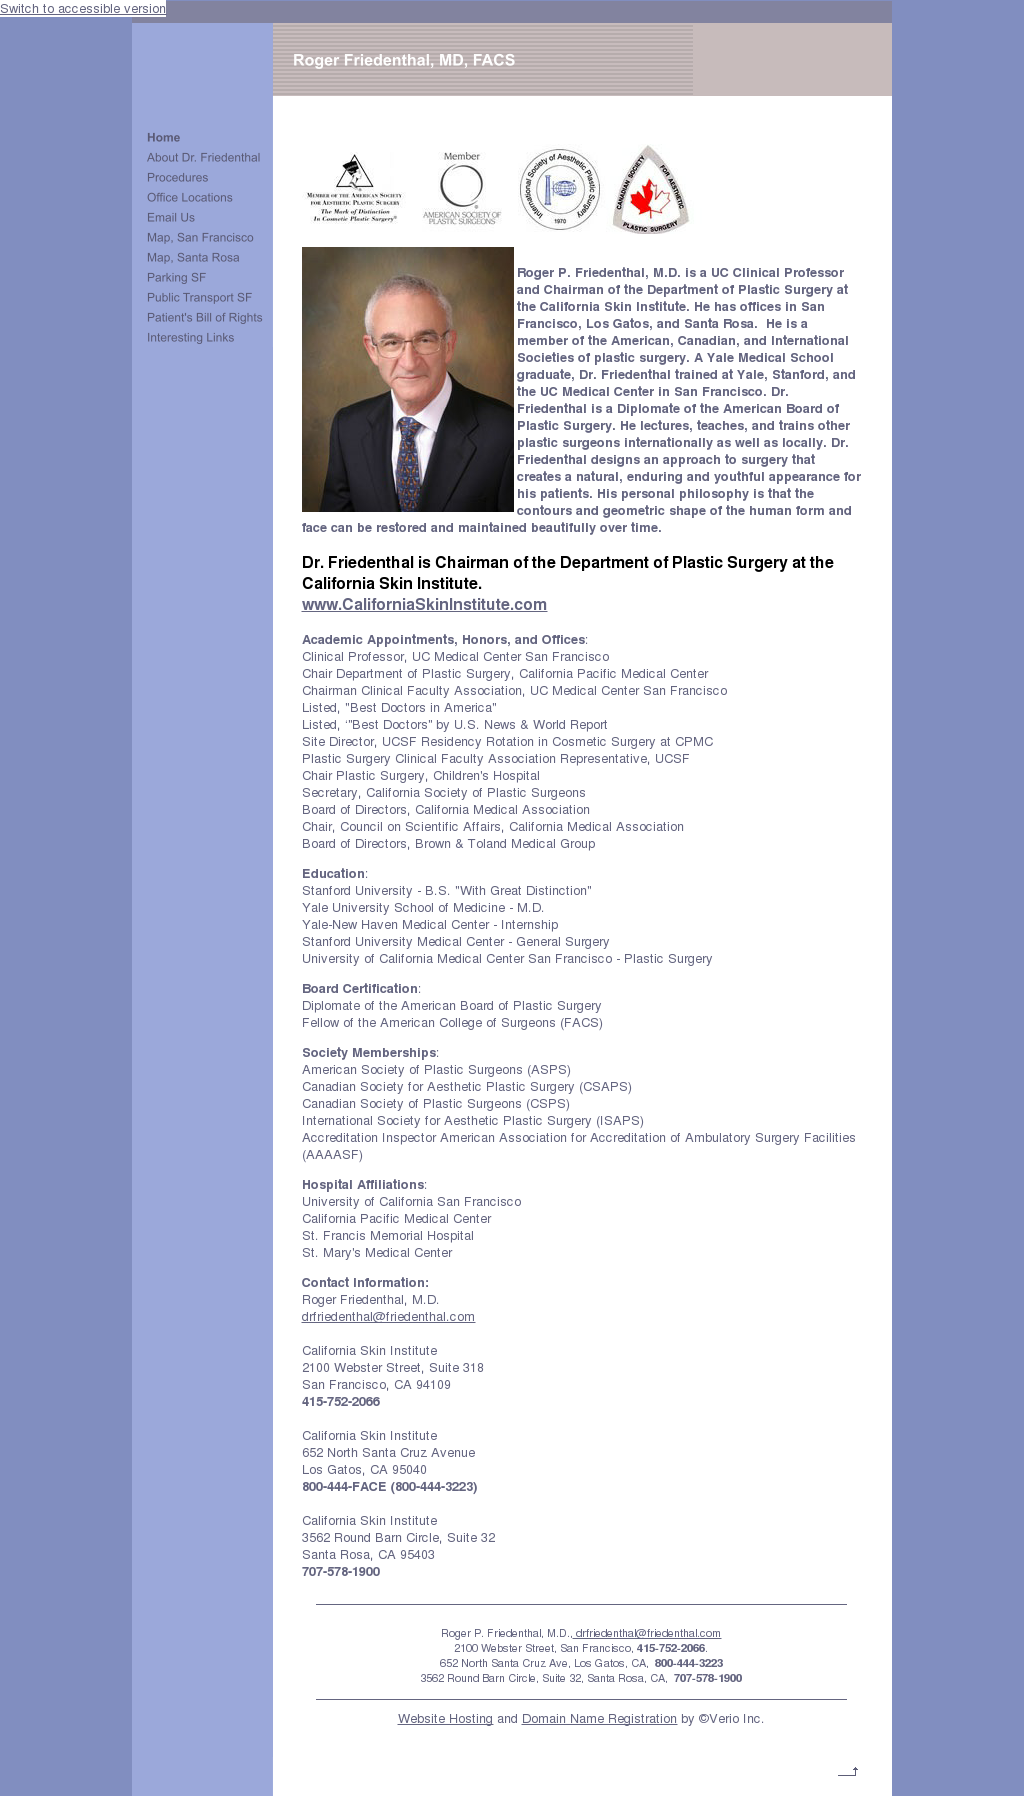 Friedenthal Roger P Md Competitors, Revenue and Employees - Owler